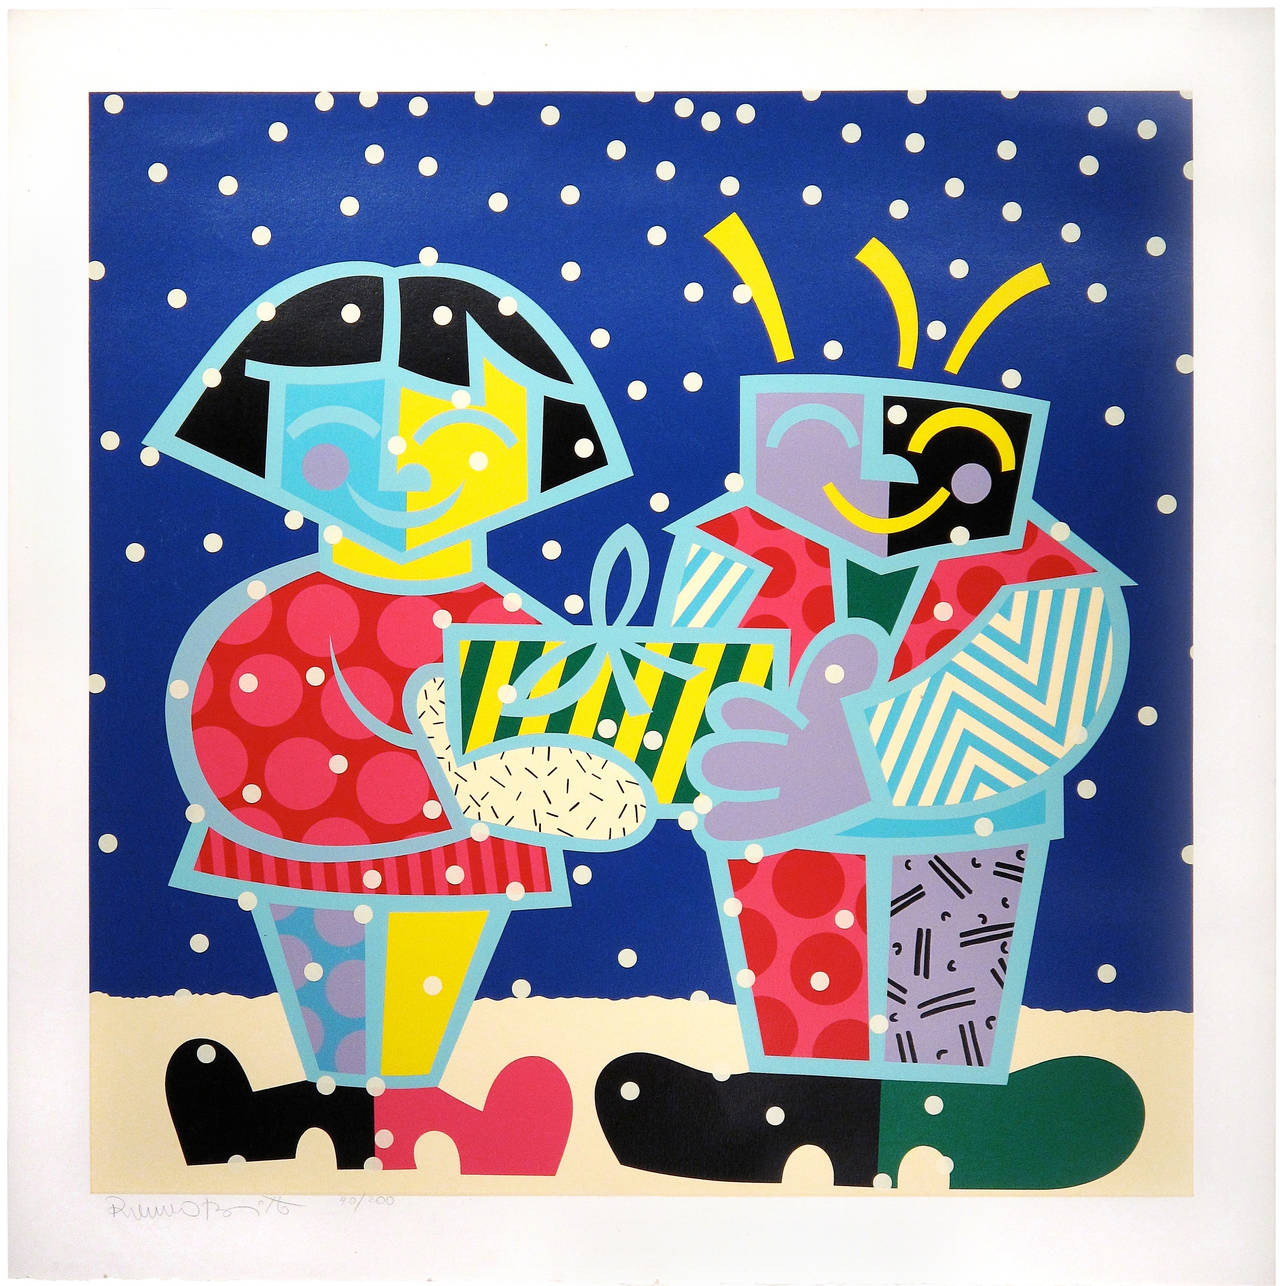 Best Buddies - Print by Romero Britto